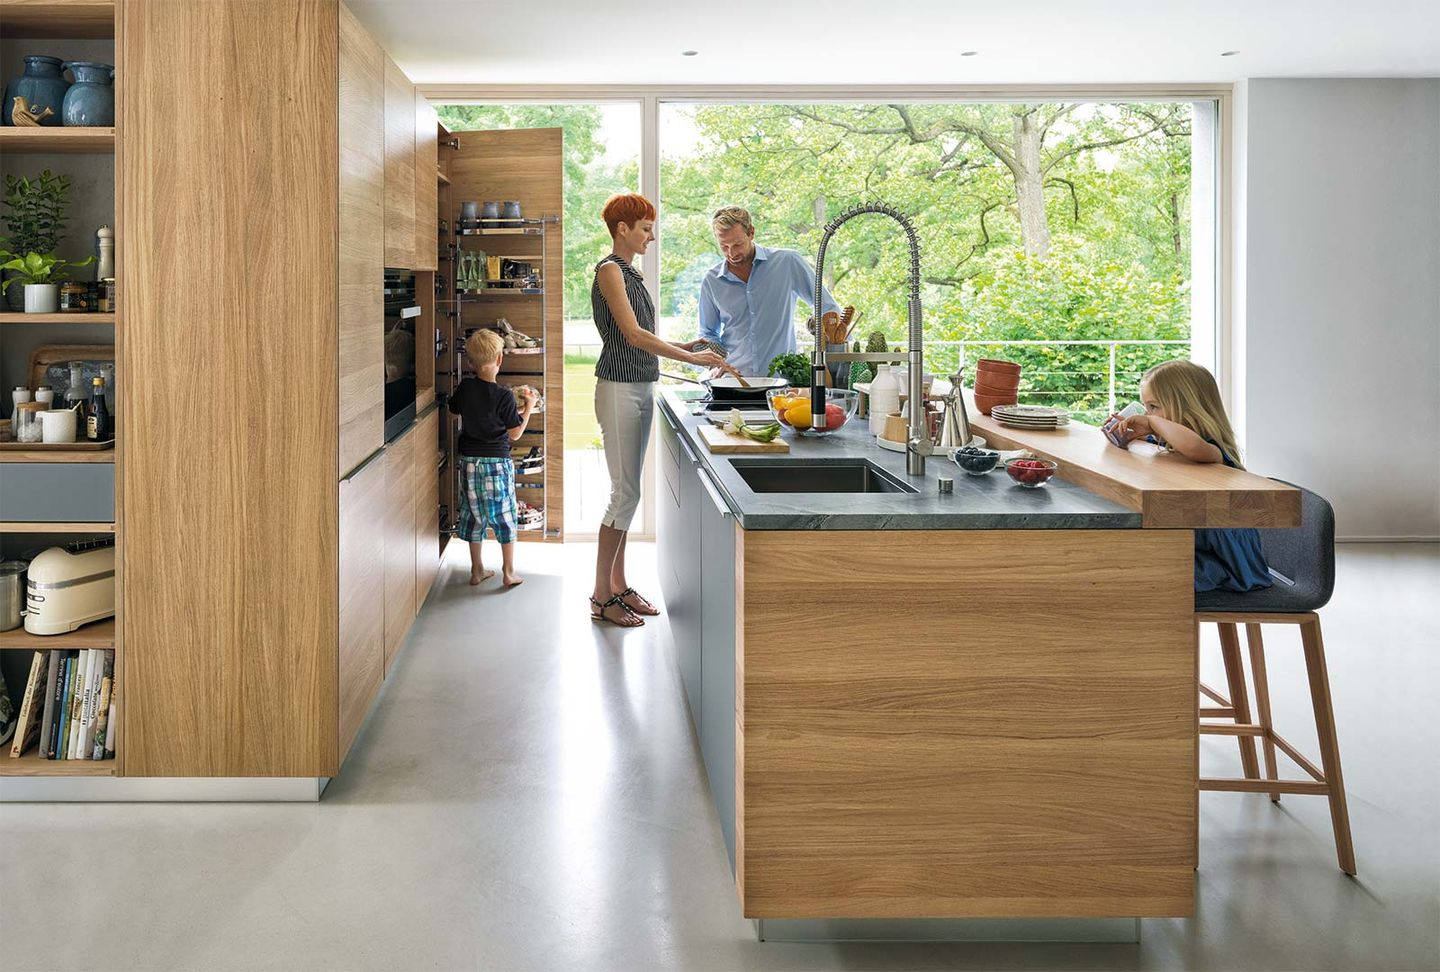 linee kitchen of solid wood in oak